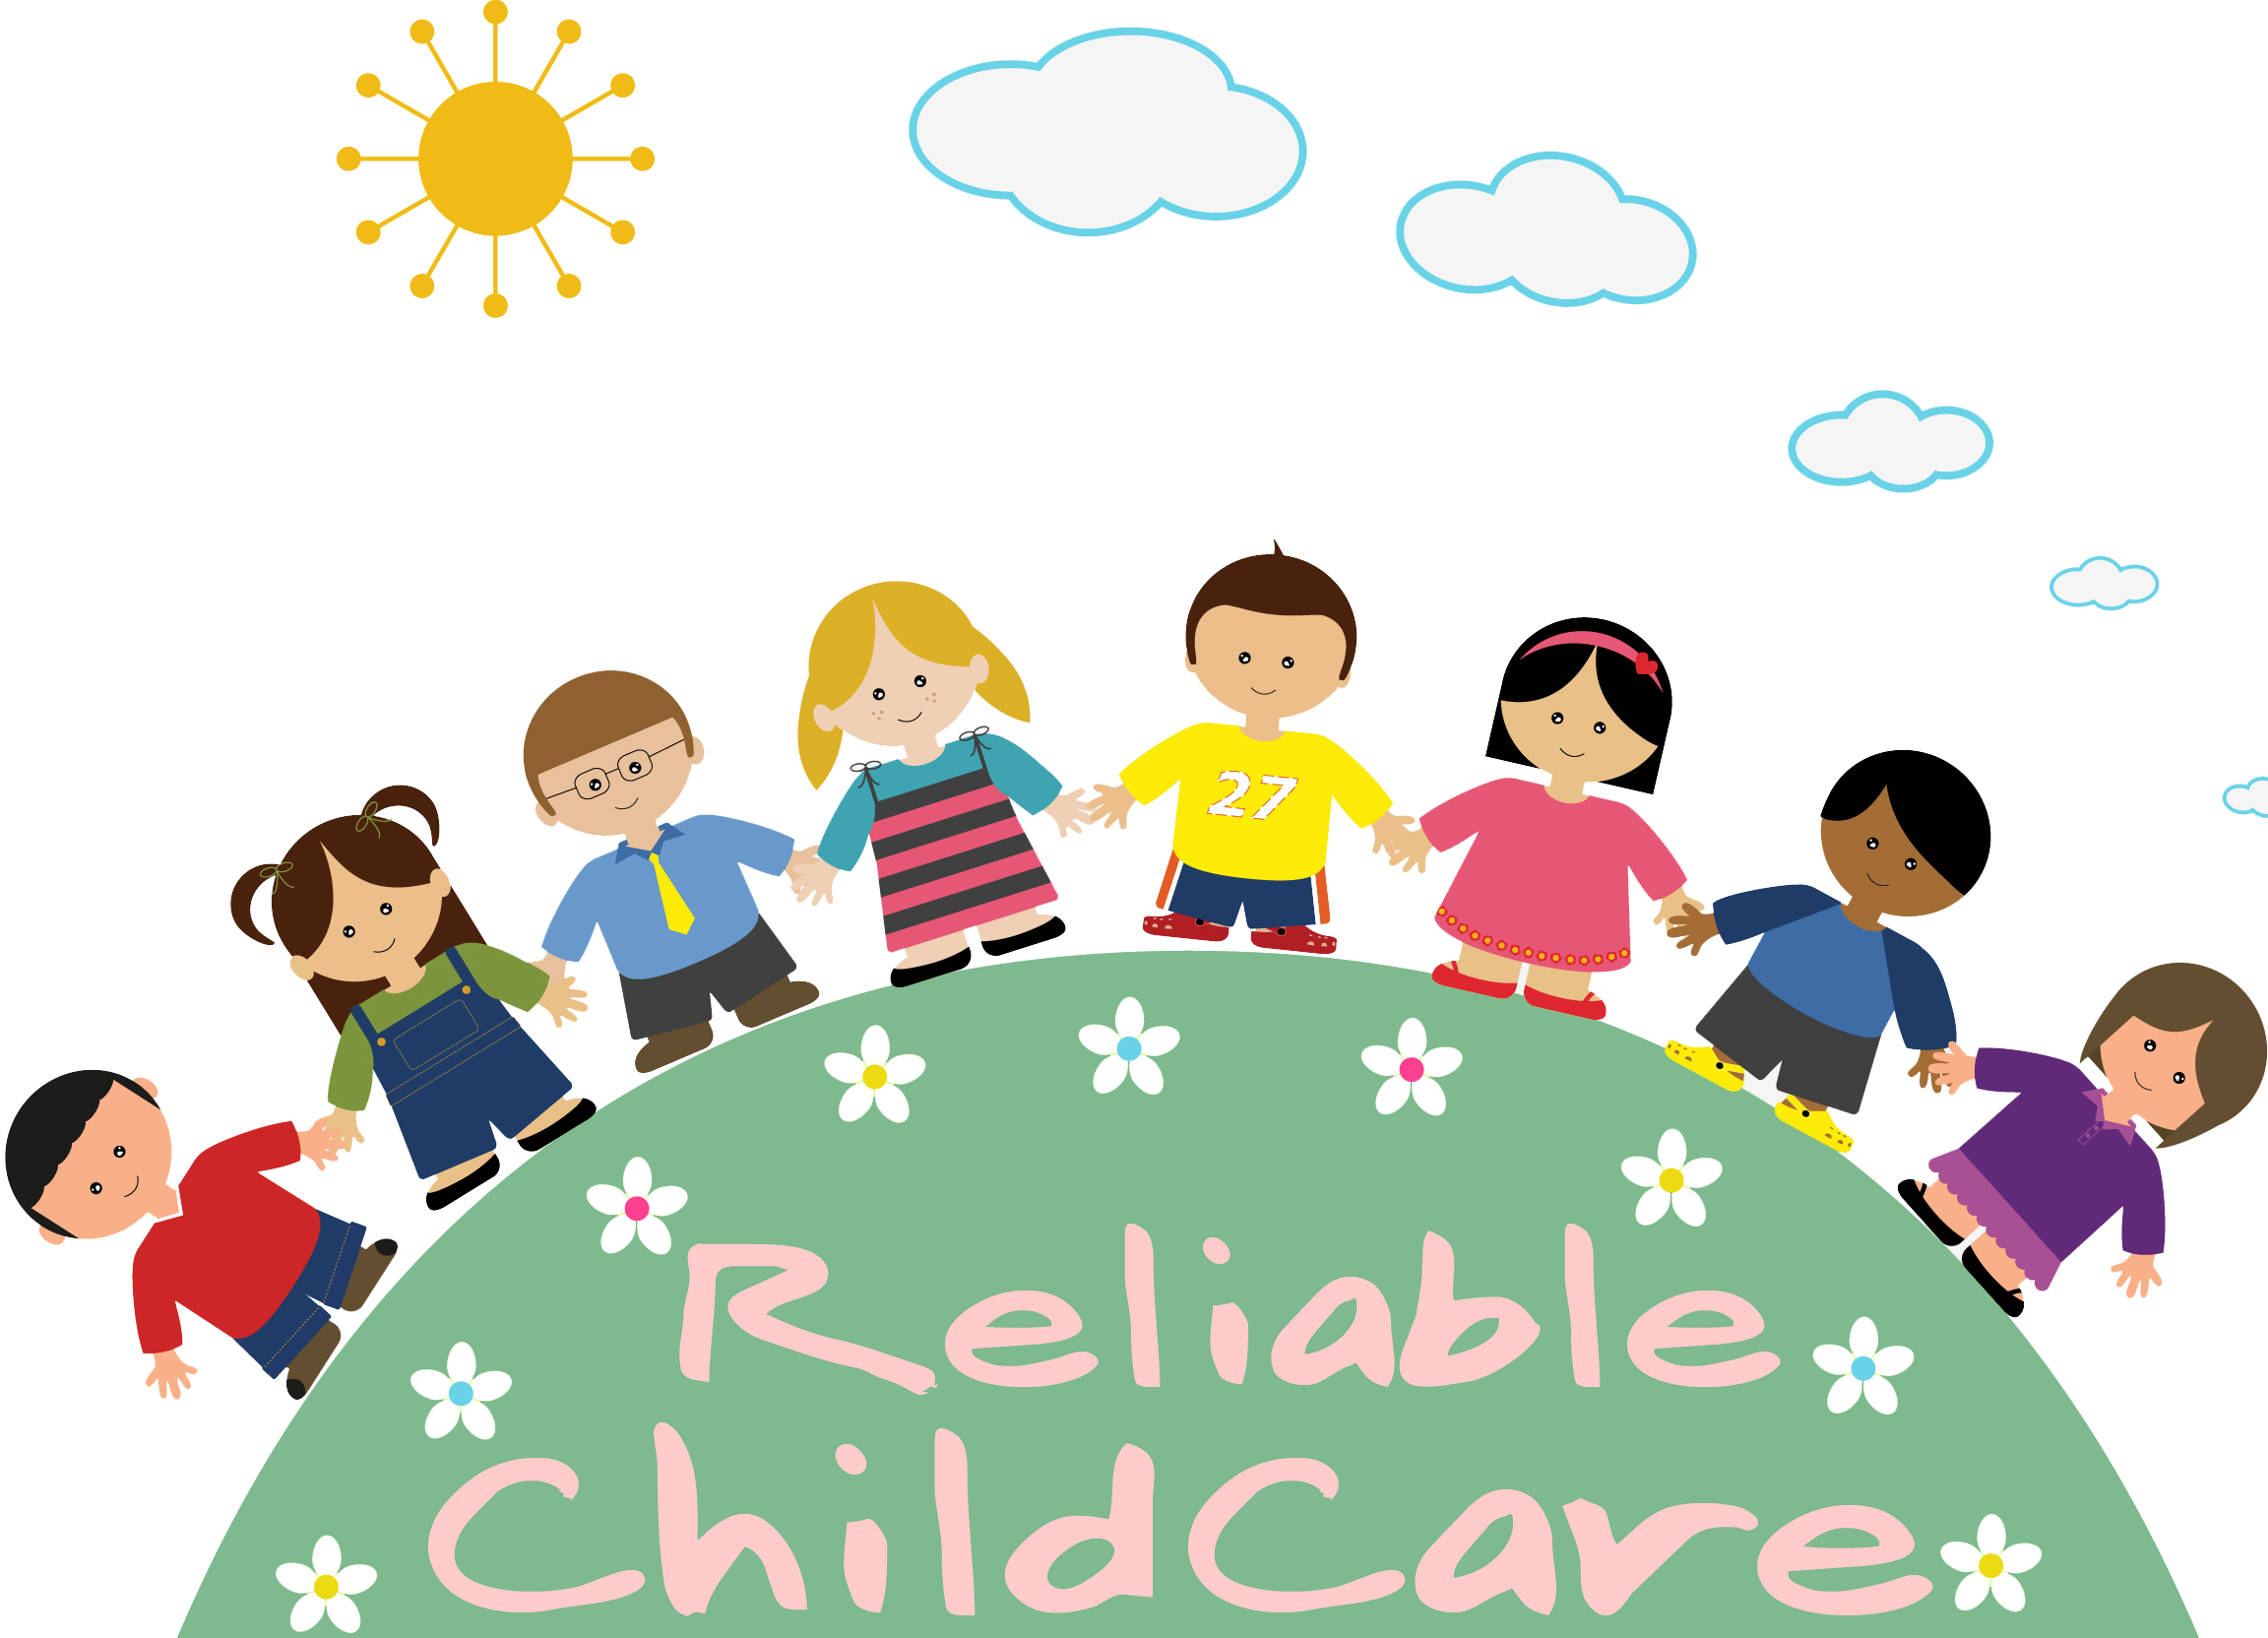 Reliable Child Care Png image #42461